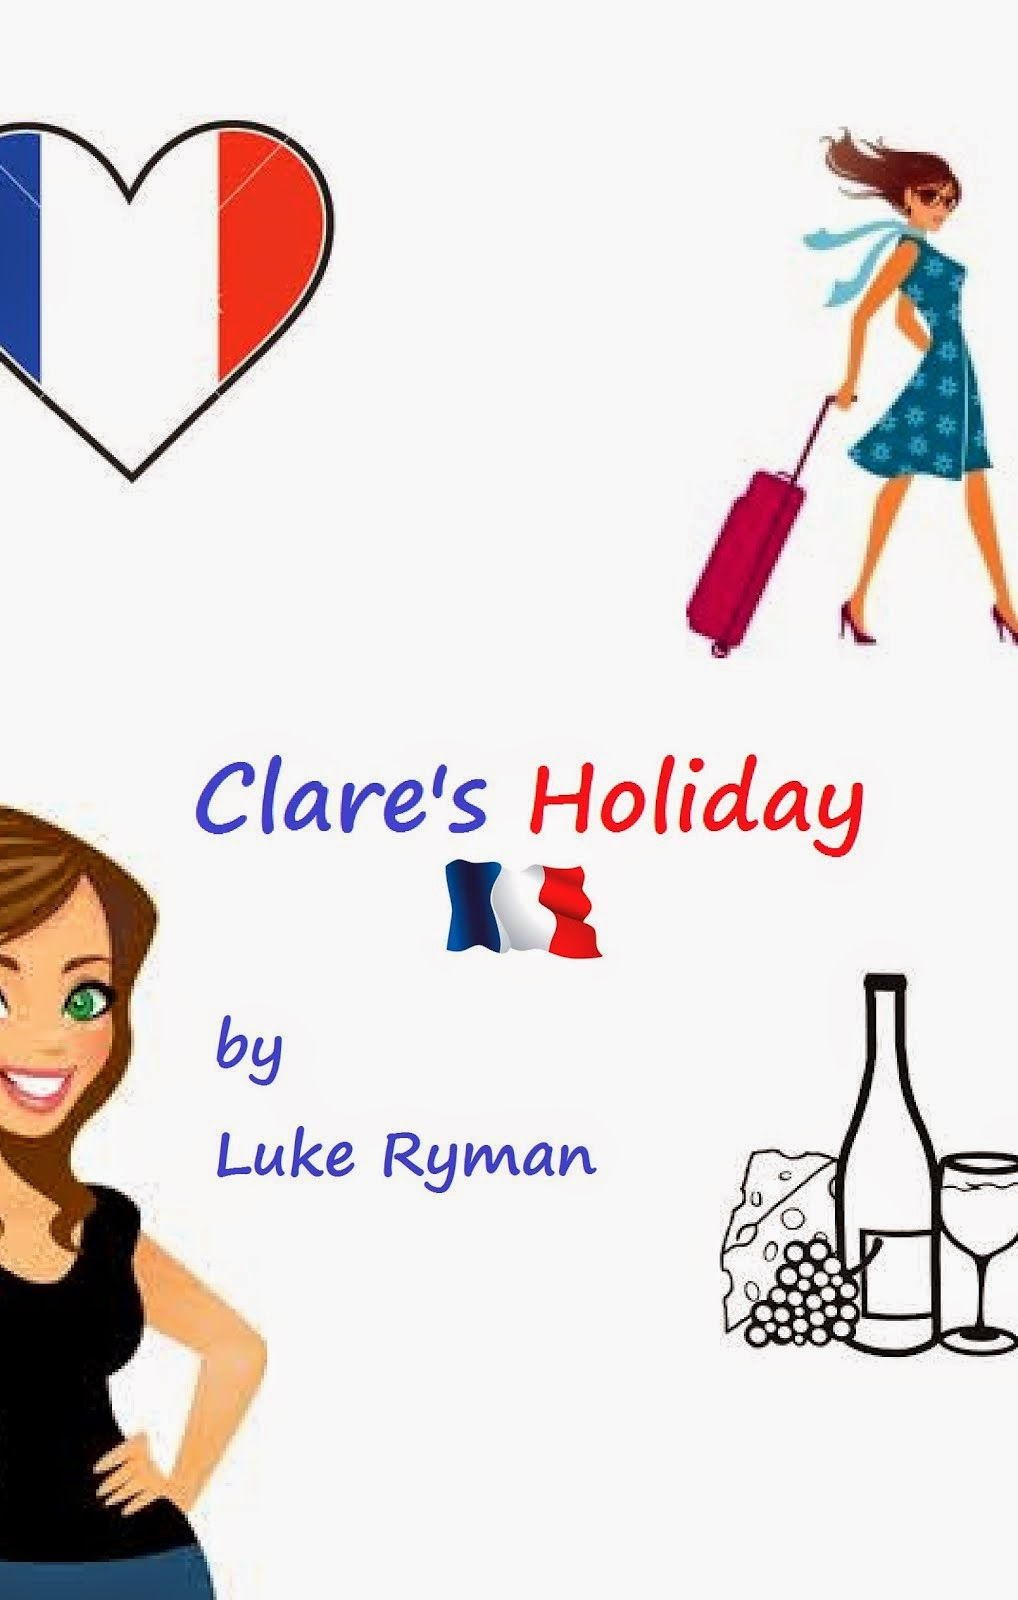 Clare's Holiday